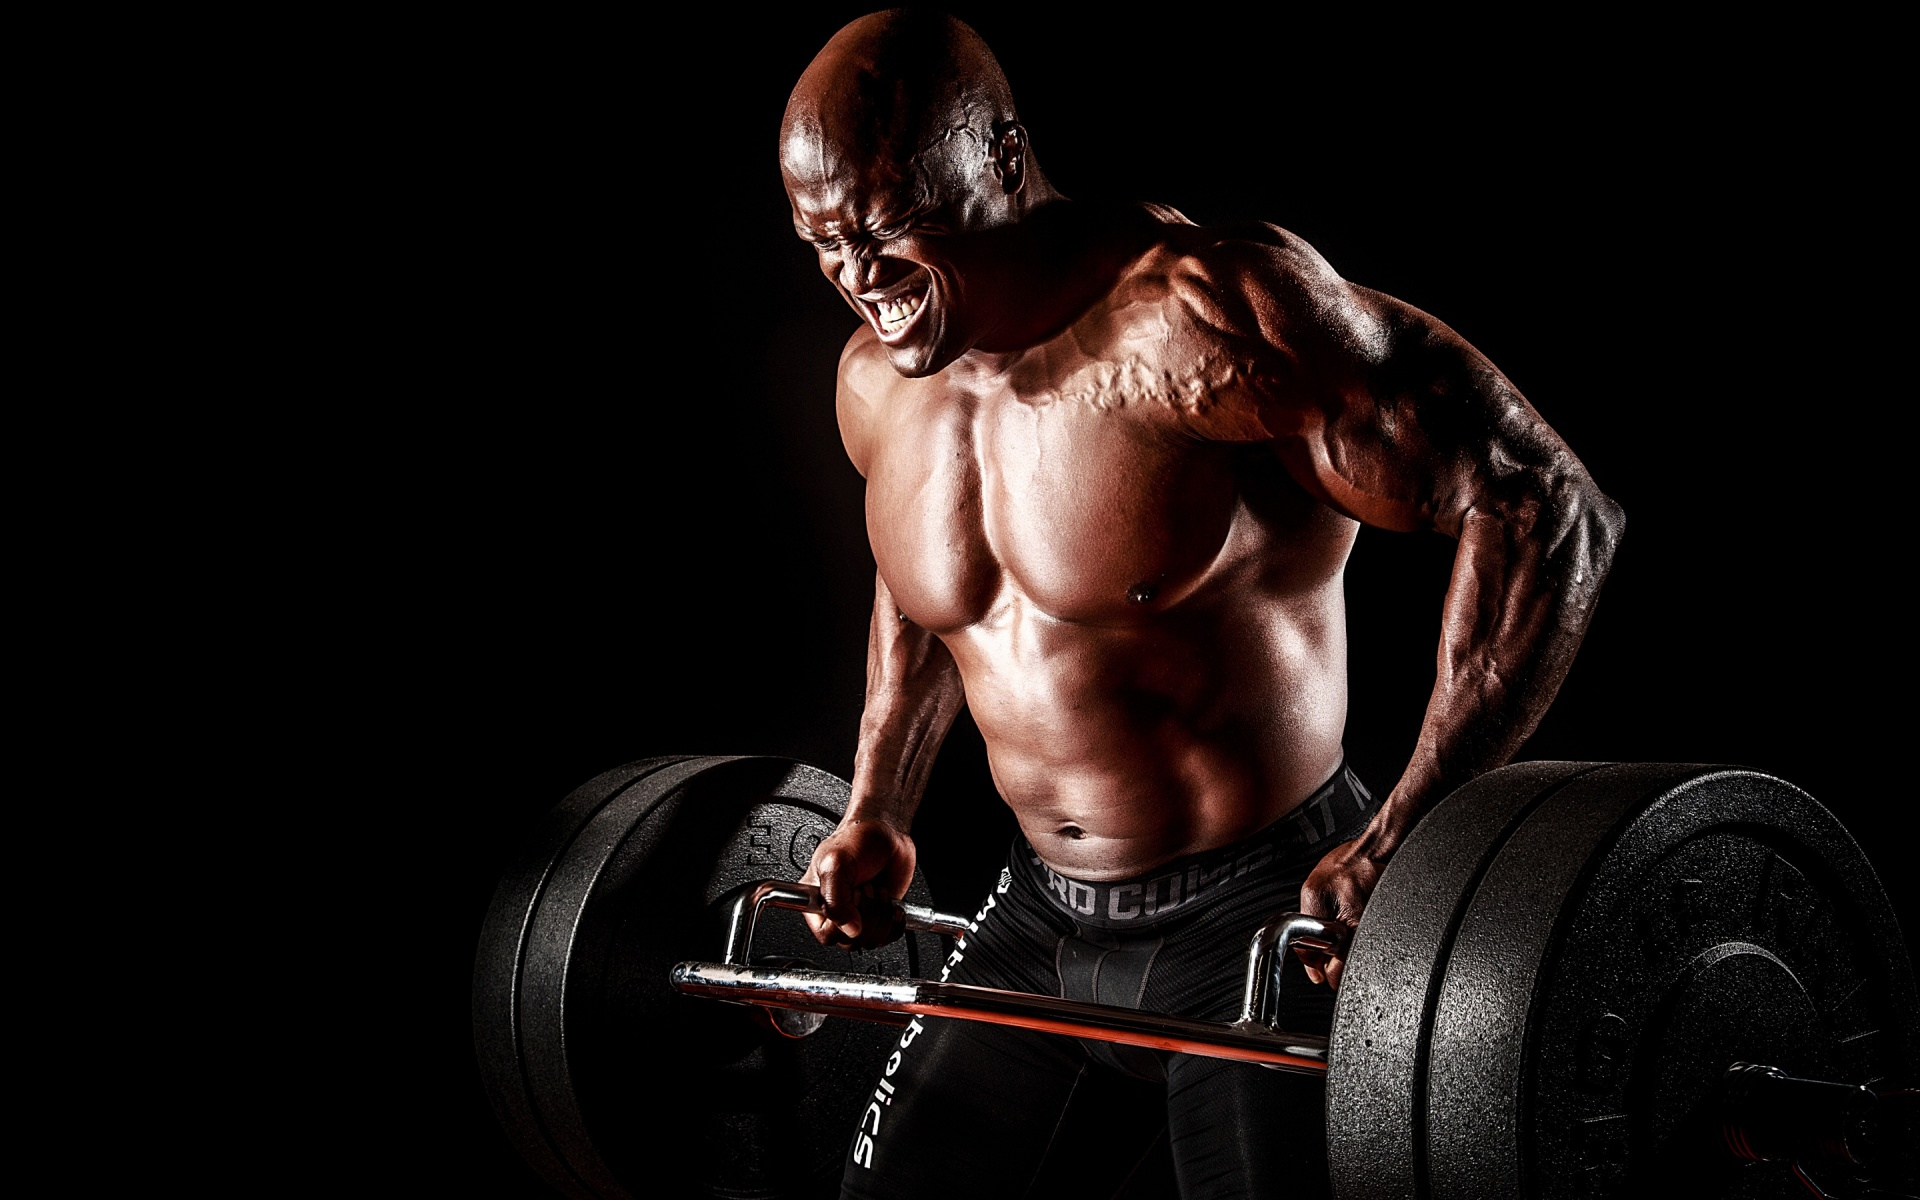 Weight Lifting Tips for Massive Growth